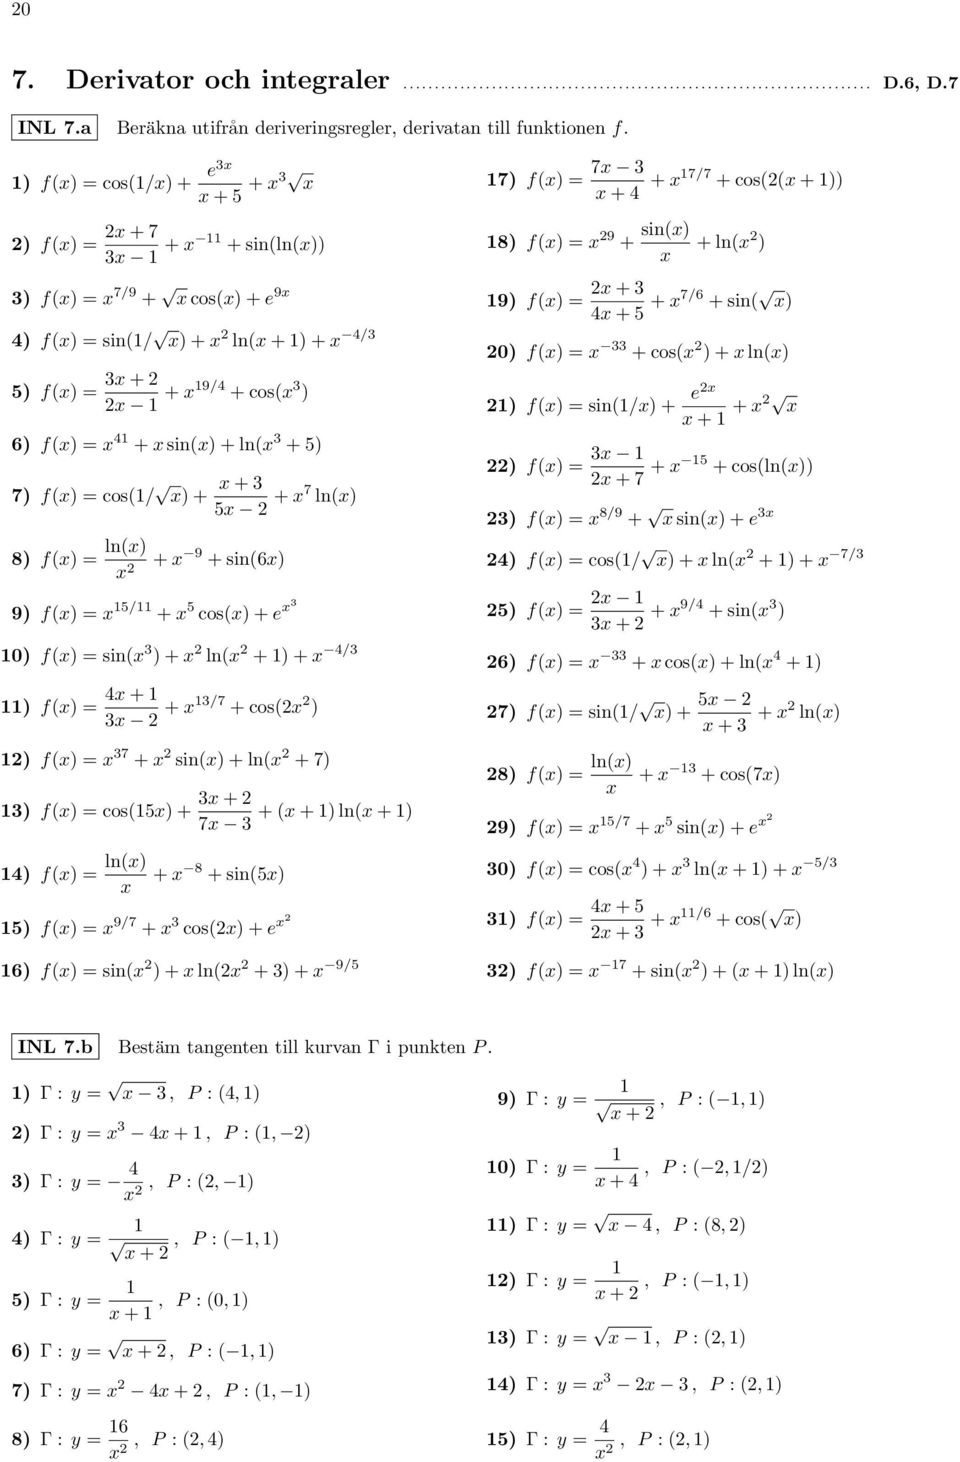 cos/ x) + x + x + x7 lnx) 8) fx) = lnx) x + x 9 + sin6x) 9) fx) = x / + x cosx) + e x 0) fx) = sinx ) + x lnx + ) + x 4/ ) fx) = 4x + x + x/7 + cosx ) ) fx) = x 7 + x sinx) + lnx + 7) ) fx) = cosx) +